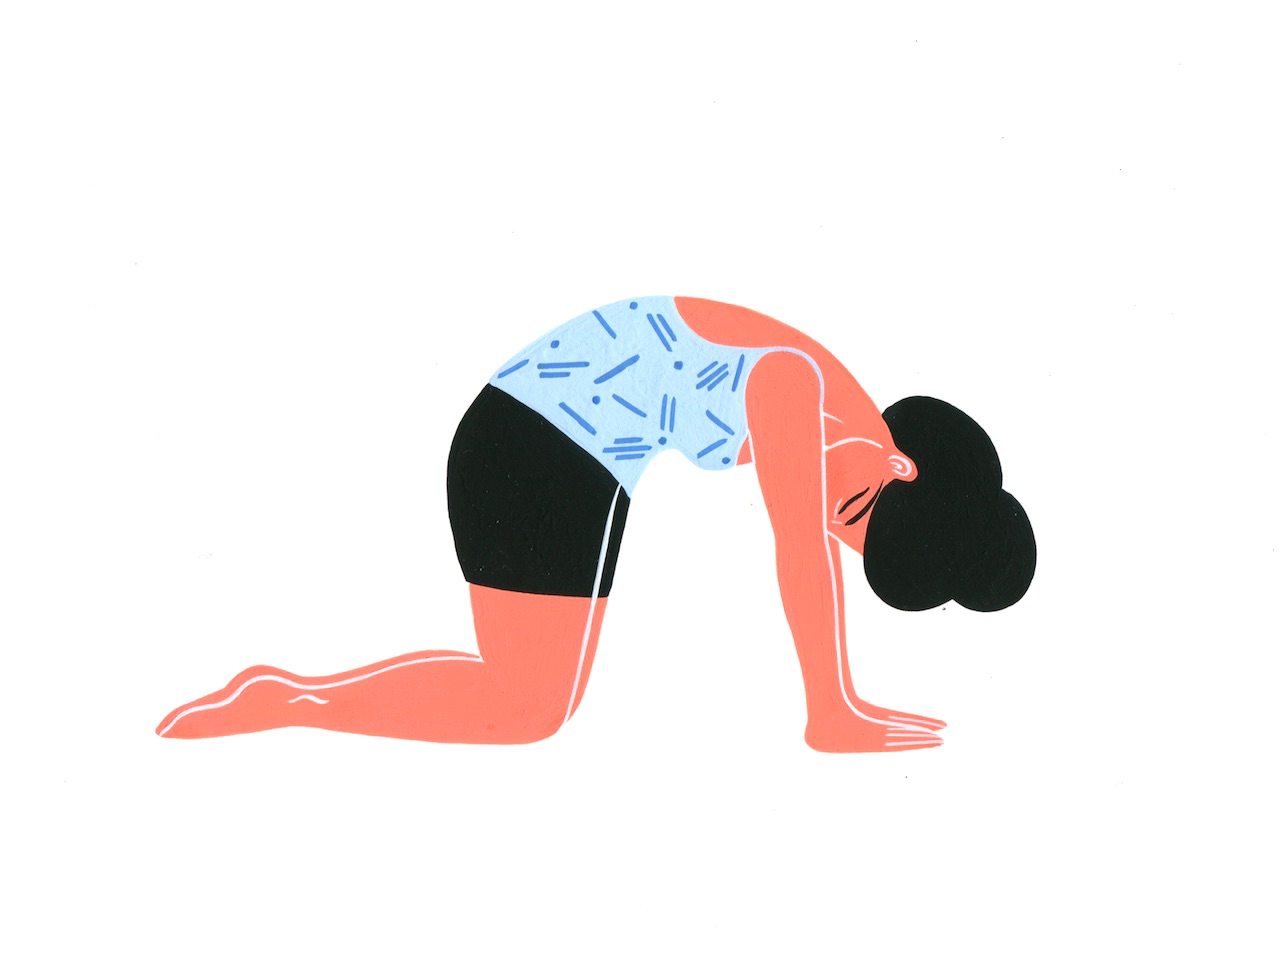 yoga_3.2 low res (1).jpg